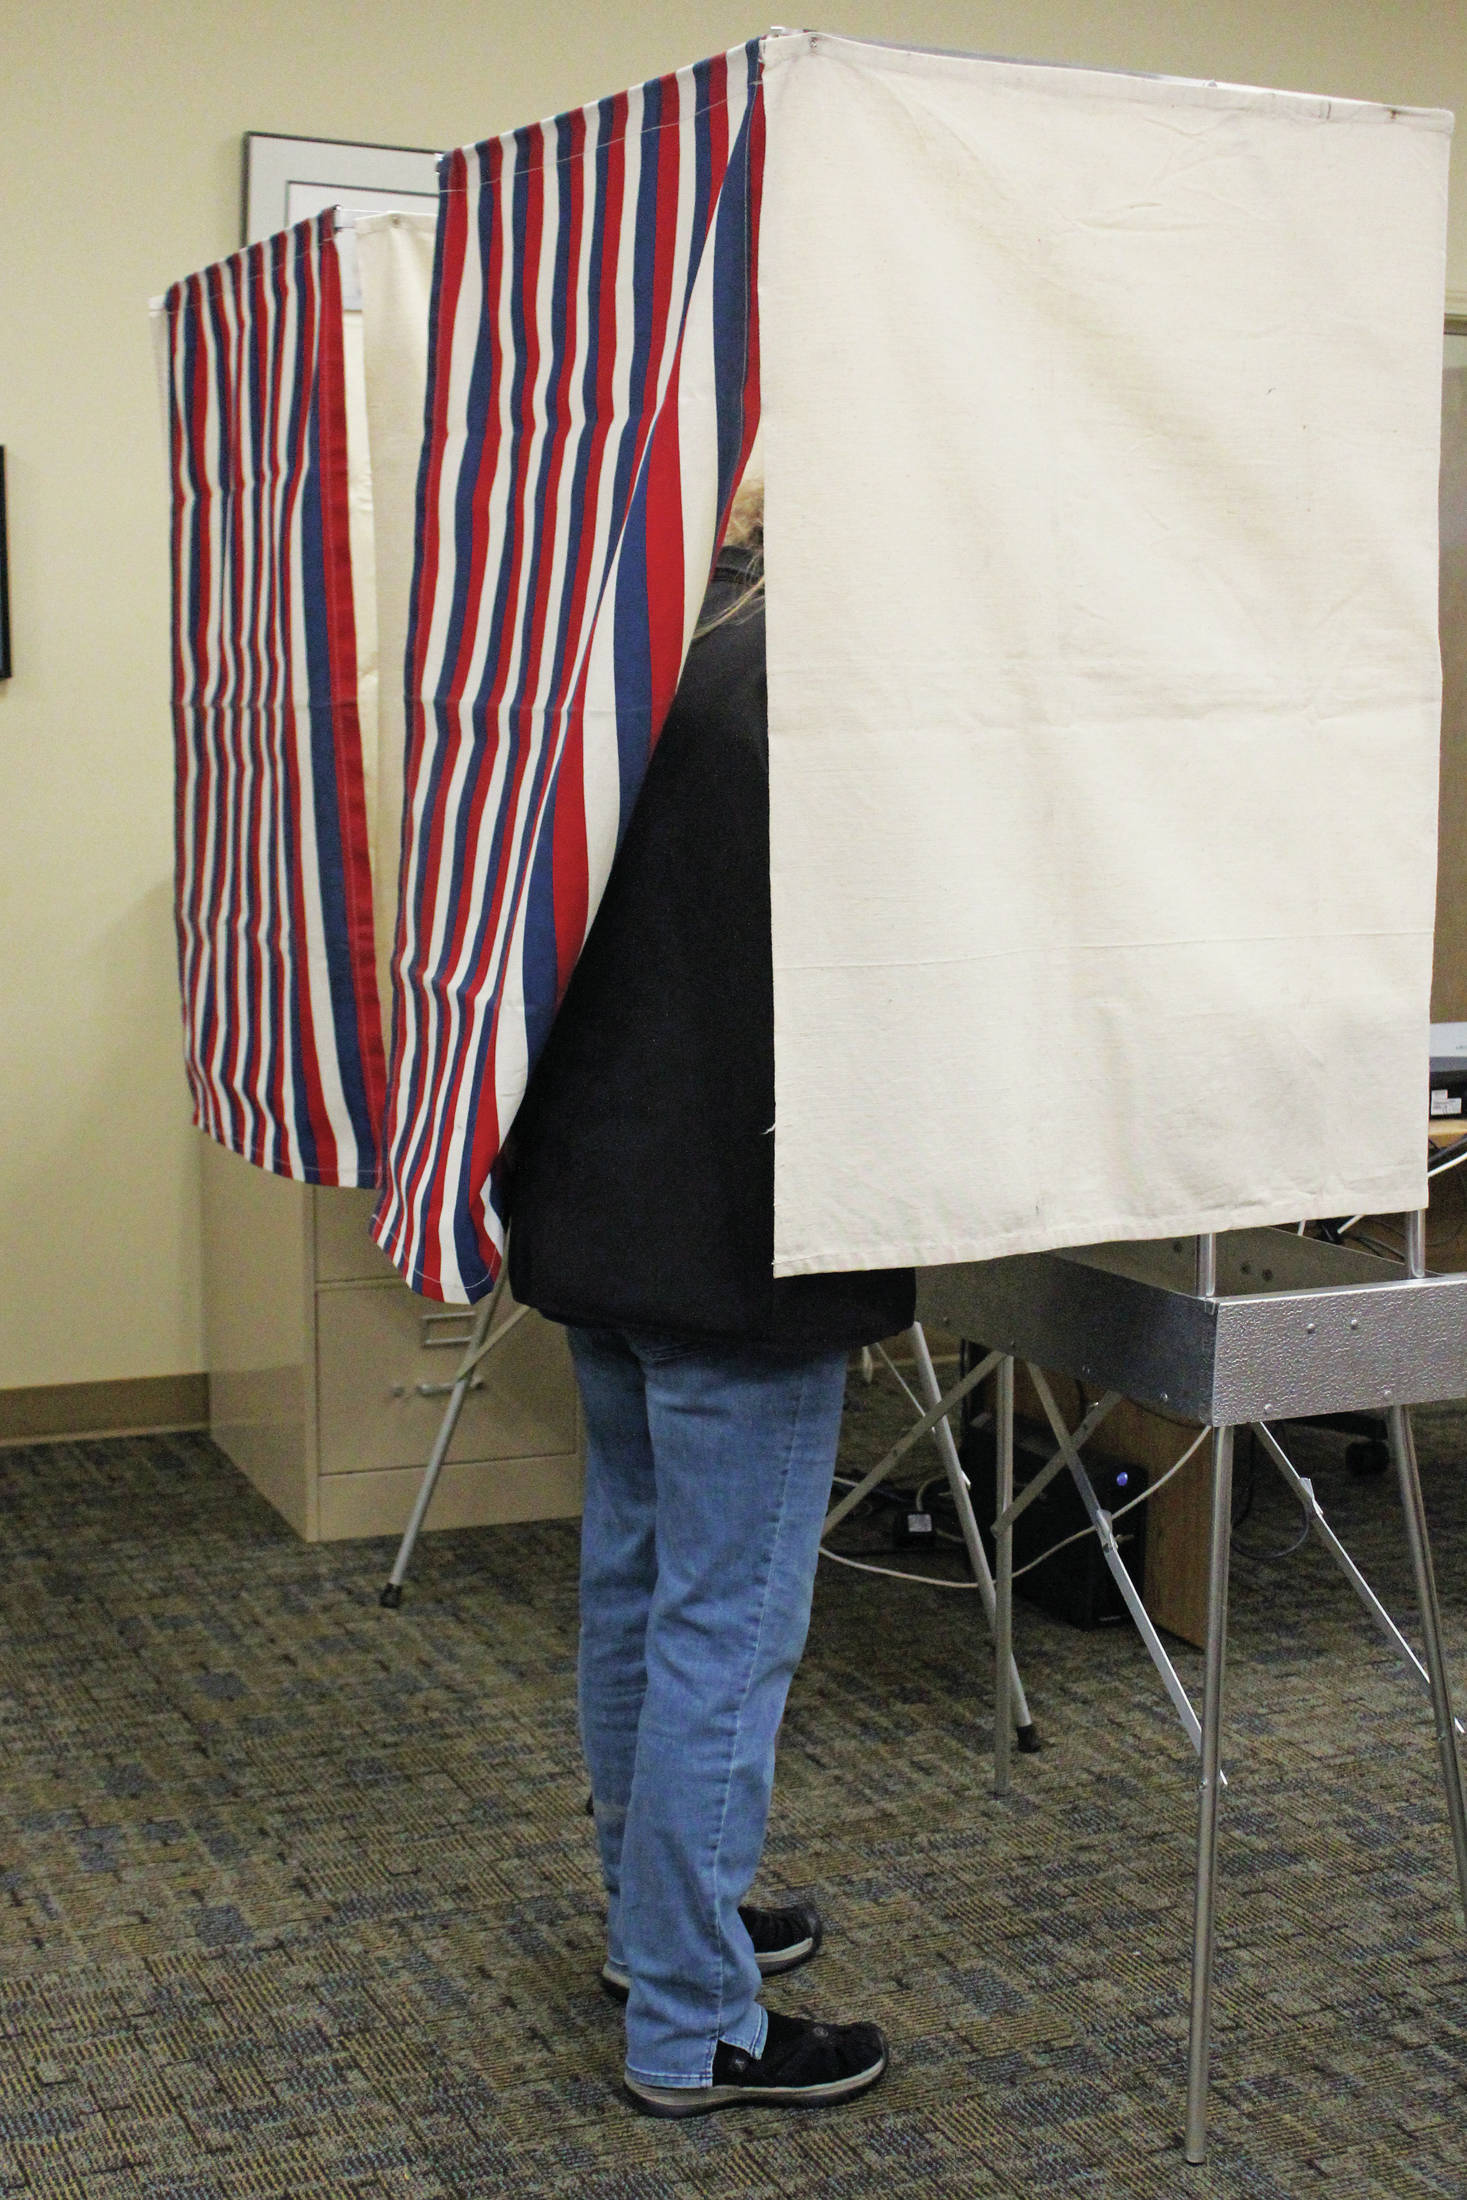 A Homer city resident casts their vote in the Tuesday, Oct. 1, 2019 municipal election at Homer City Hall in Homer, Alaska. (Photo by Megan Pacer/Homer News)